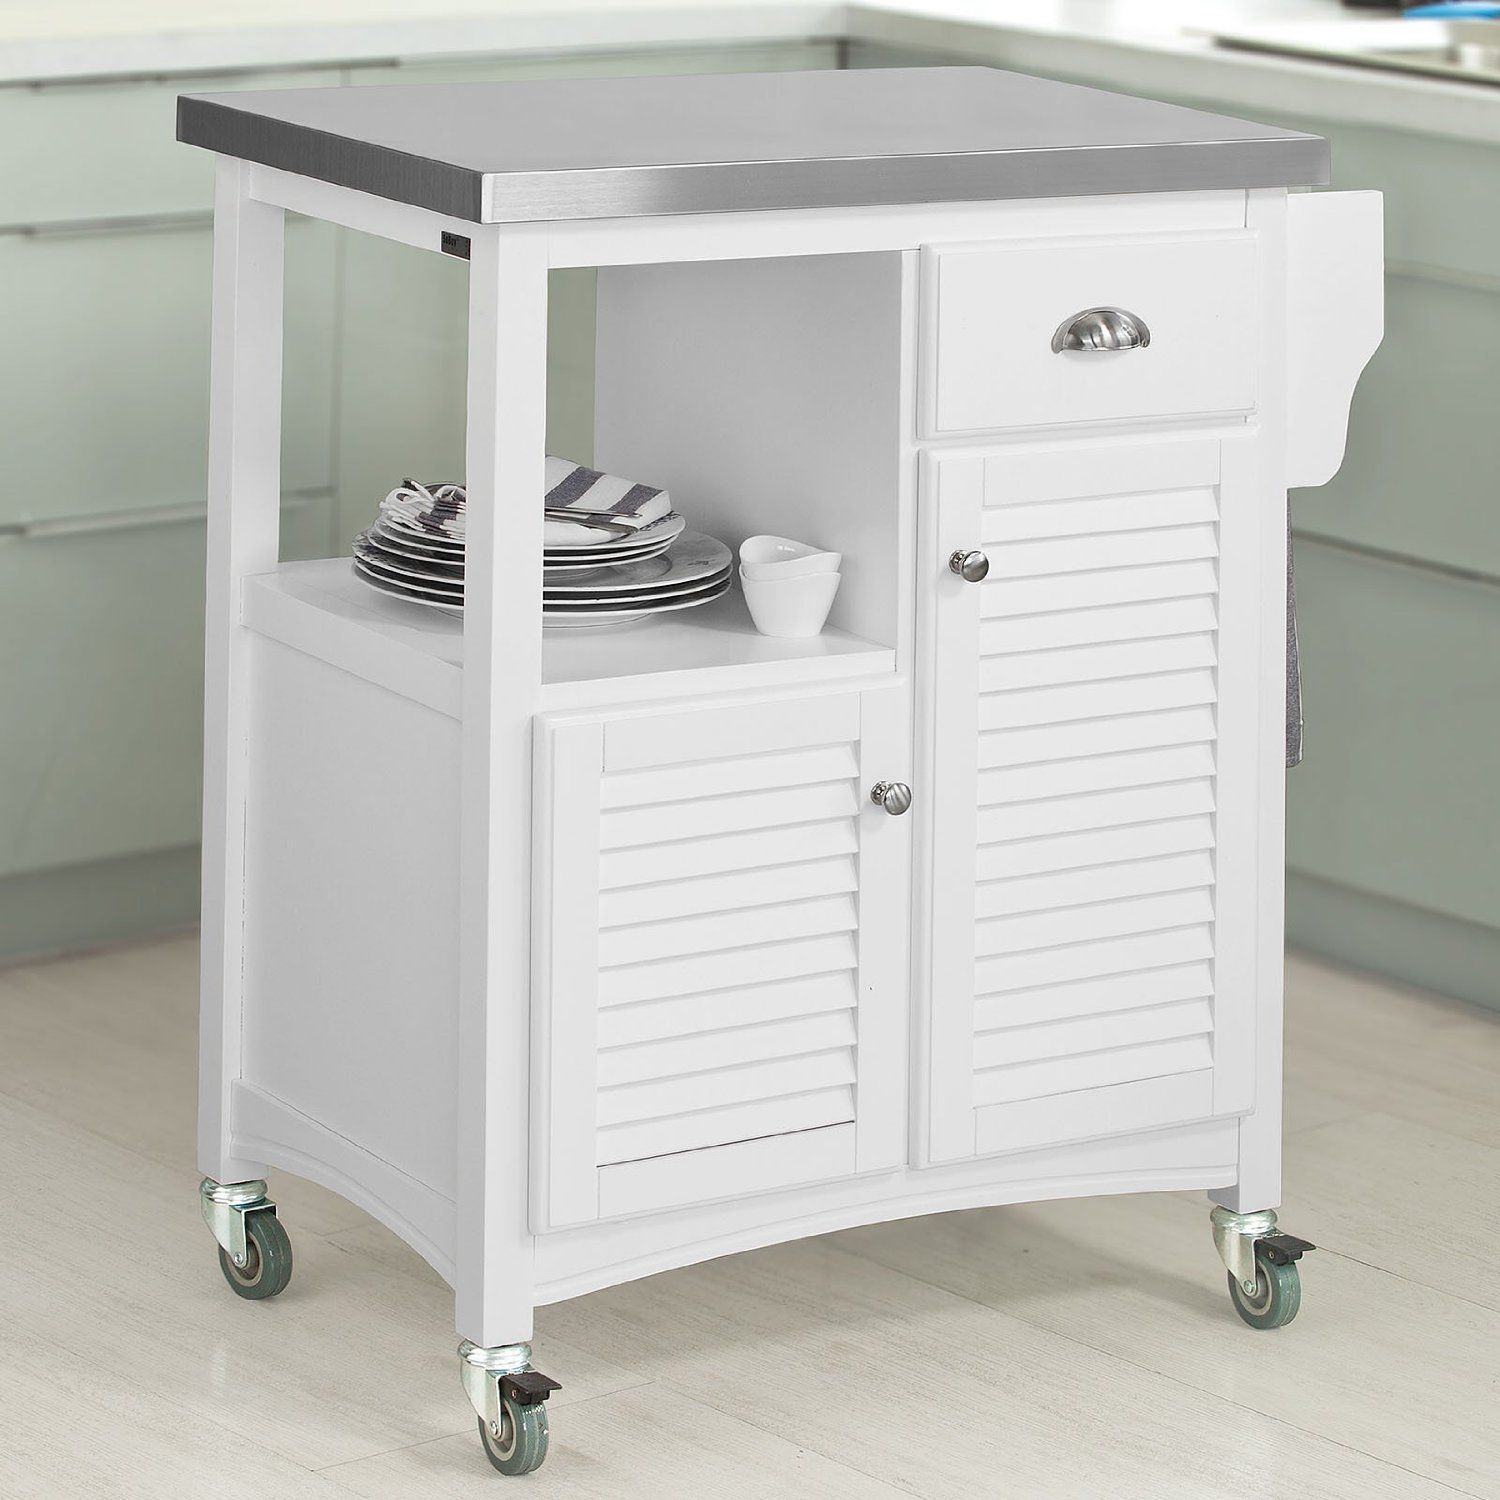 SoBuy Kitchen Storage Serving Trolley Cart with Stainless Steel ...